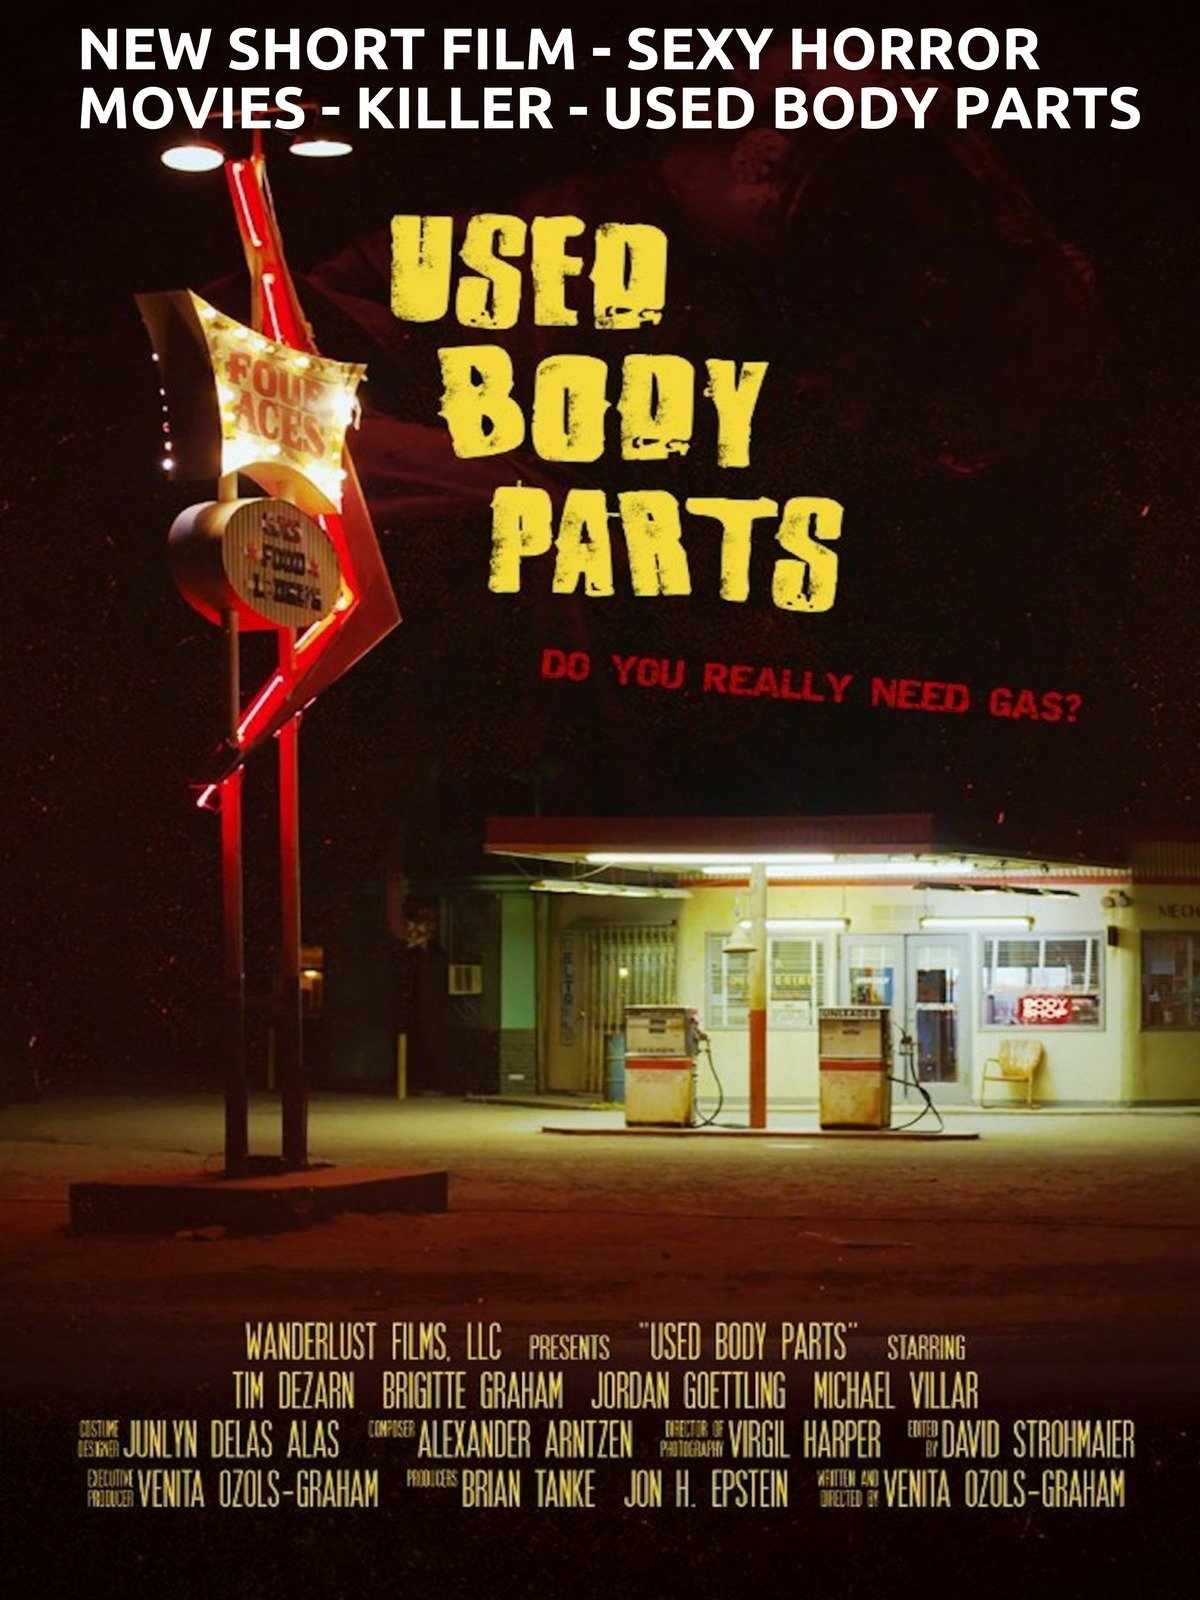 New Short Film - Sexy Horror Movies - Killer - Used Body Parts